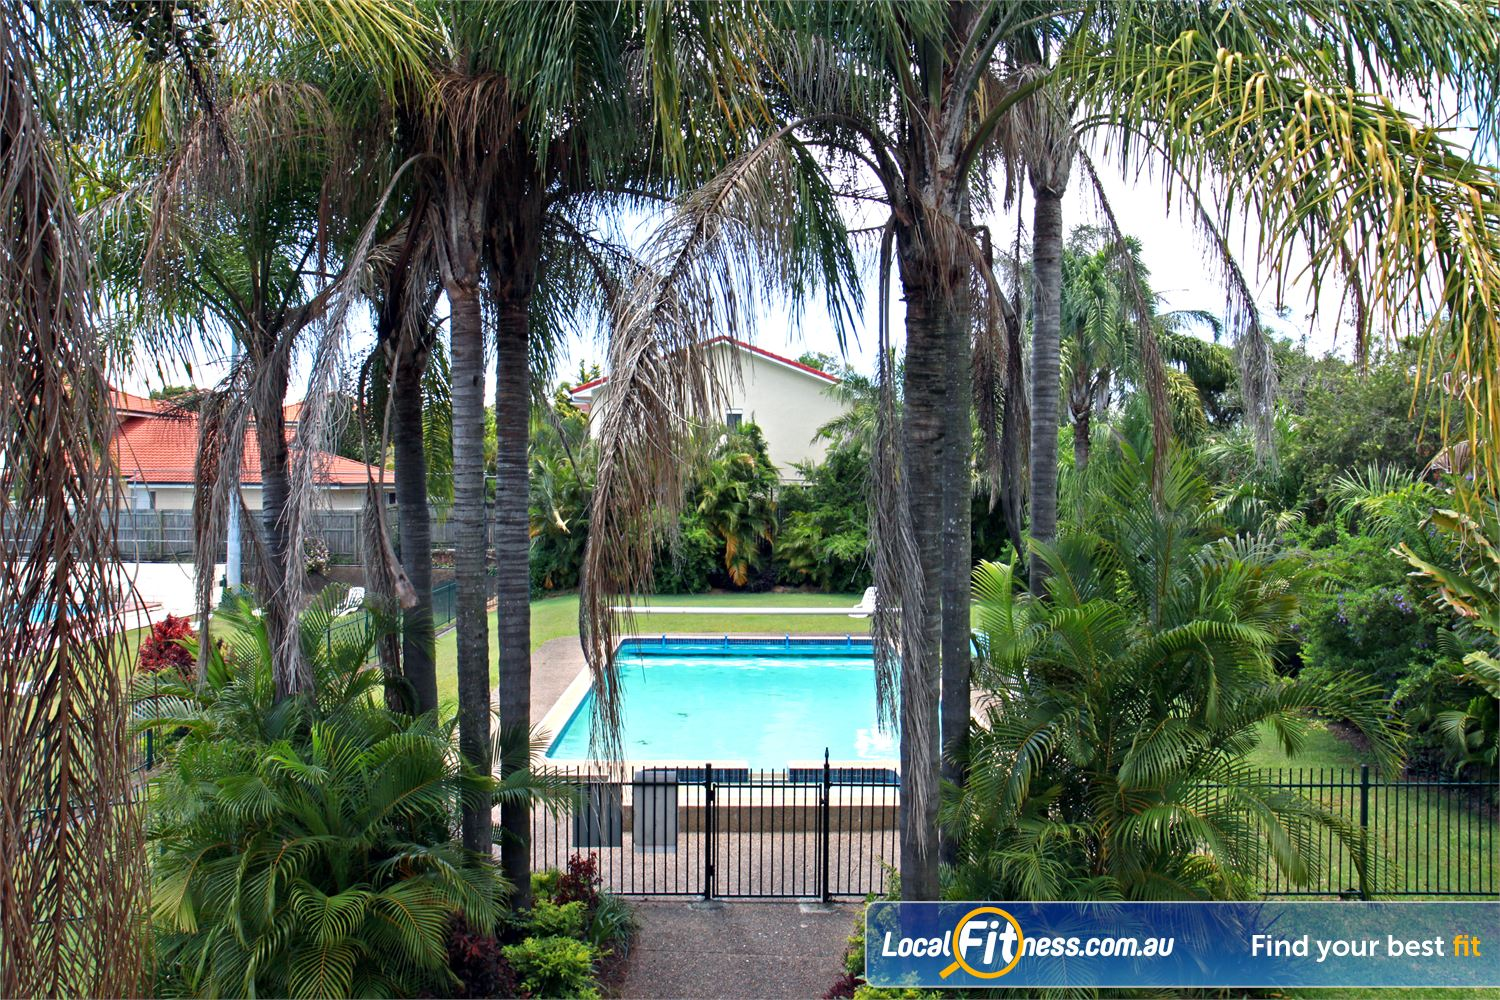 Goodlife Health Clubs Near Cleveland Multiple outdoor swimming pools in Alexander Hills.